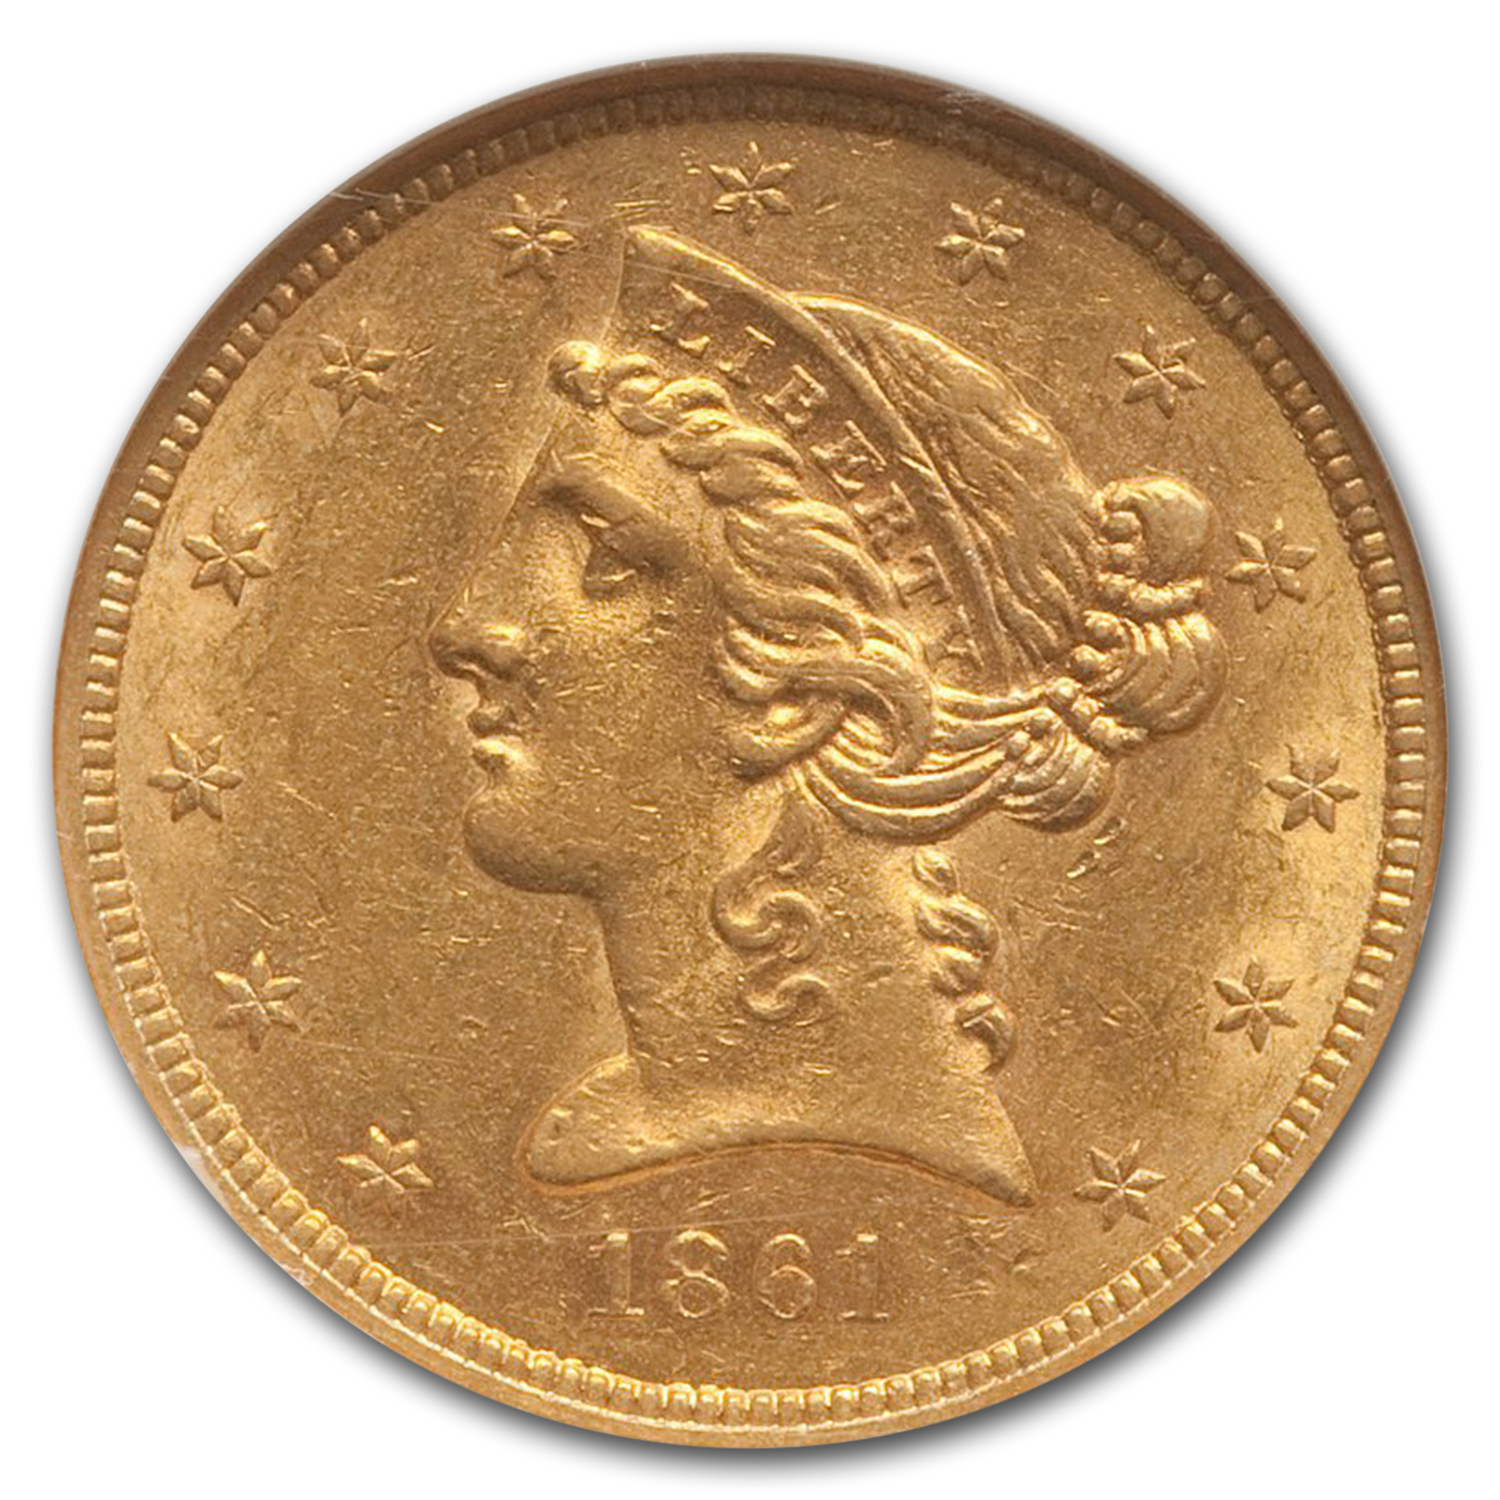 1861 $5 Liberty Gold Half Eagle - AU-58 NGC